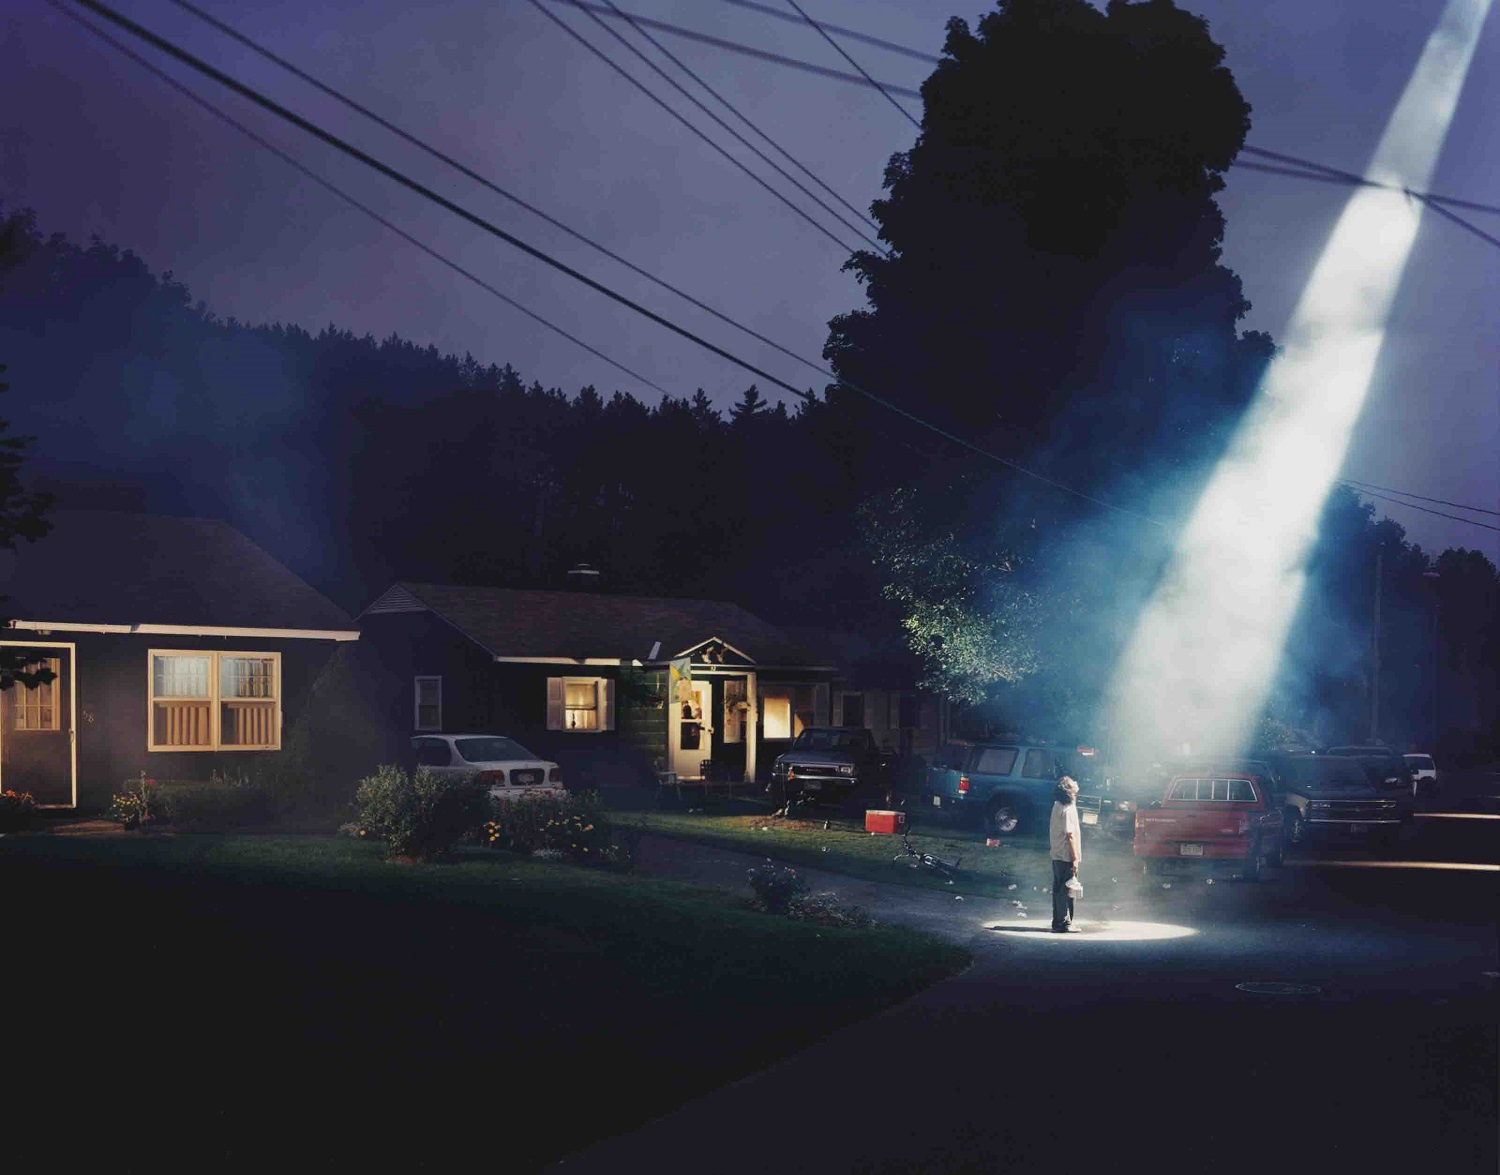 Untitled (1998) - Gregory Crewdson